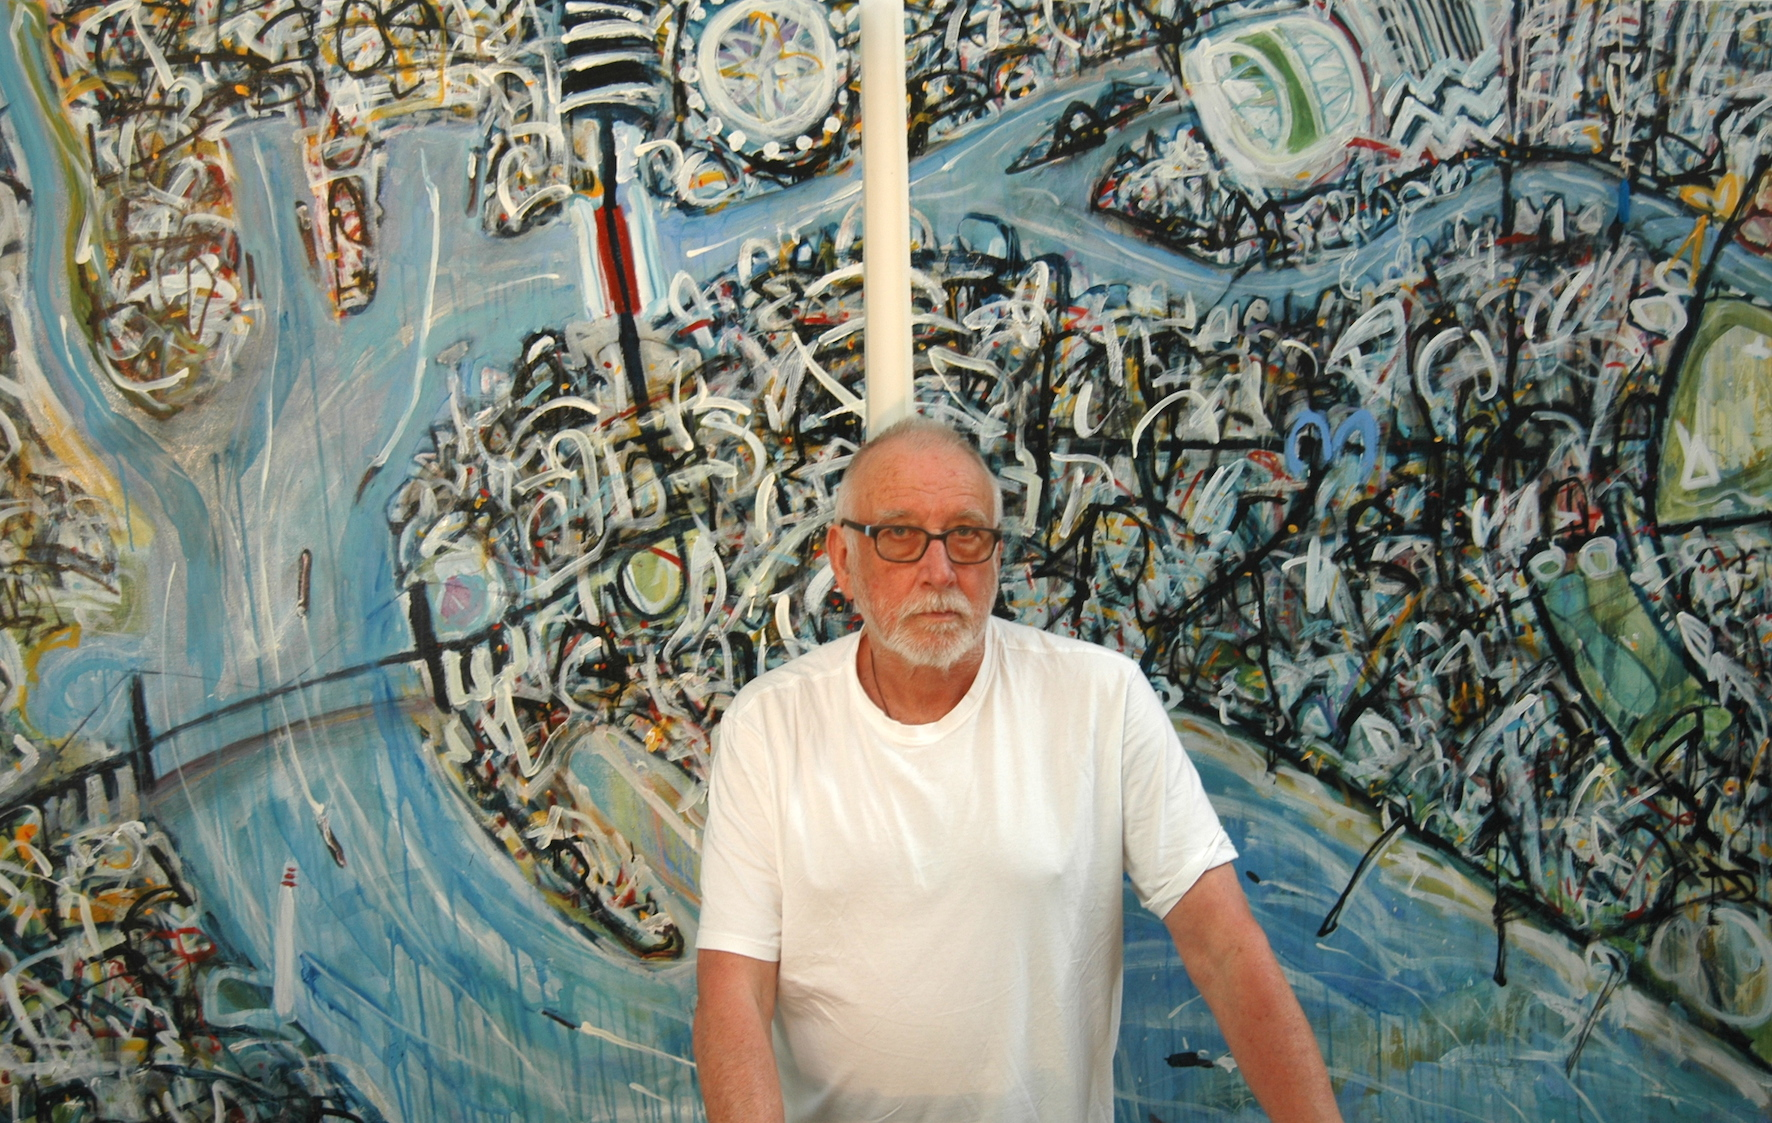 Arthur Ted Powell in his studio at Gasworks Arts Park, Astral Plane # 13, diptych, acrylic on canvas, 153 x 249cm, August 2015 [reduced]